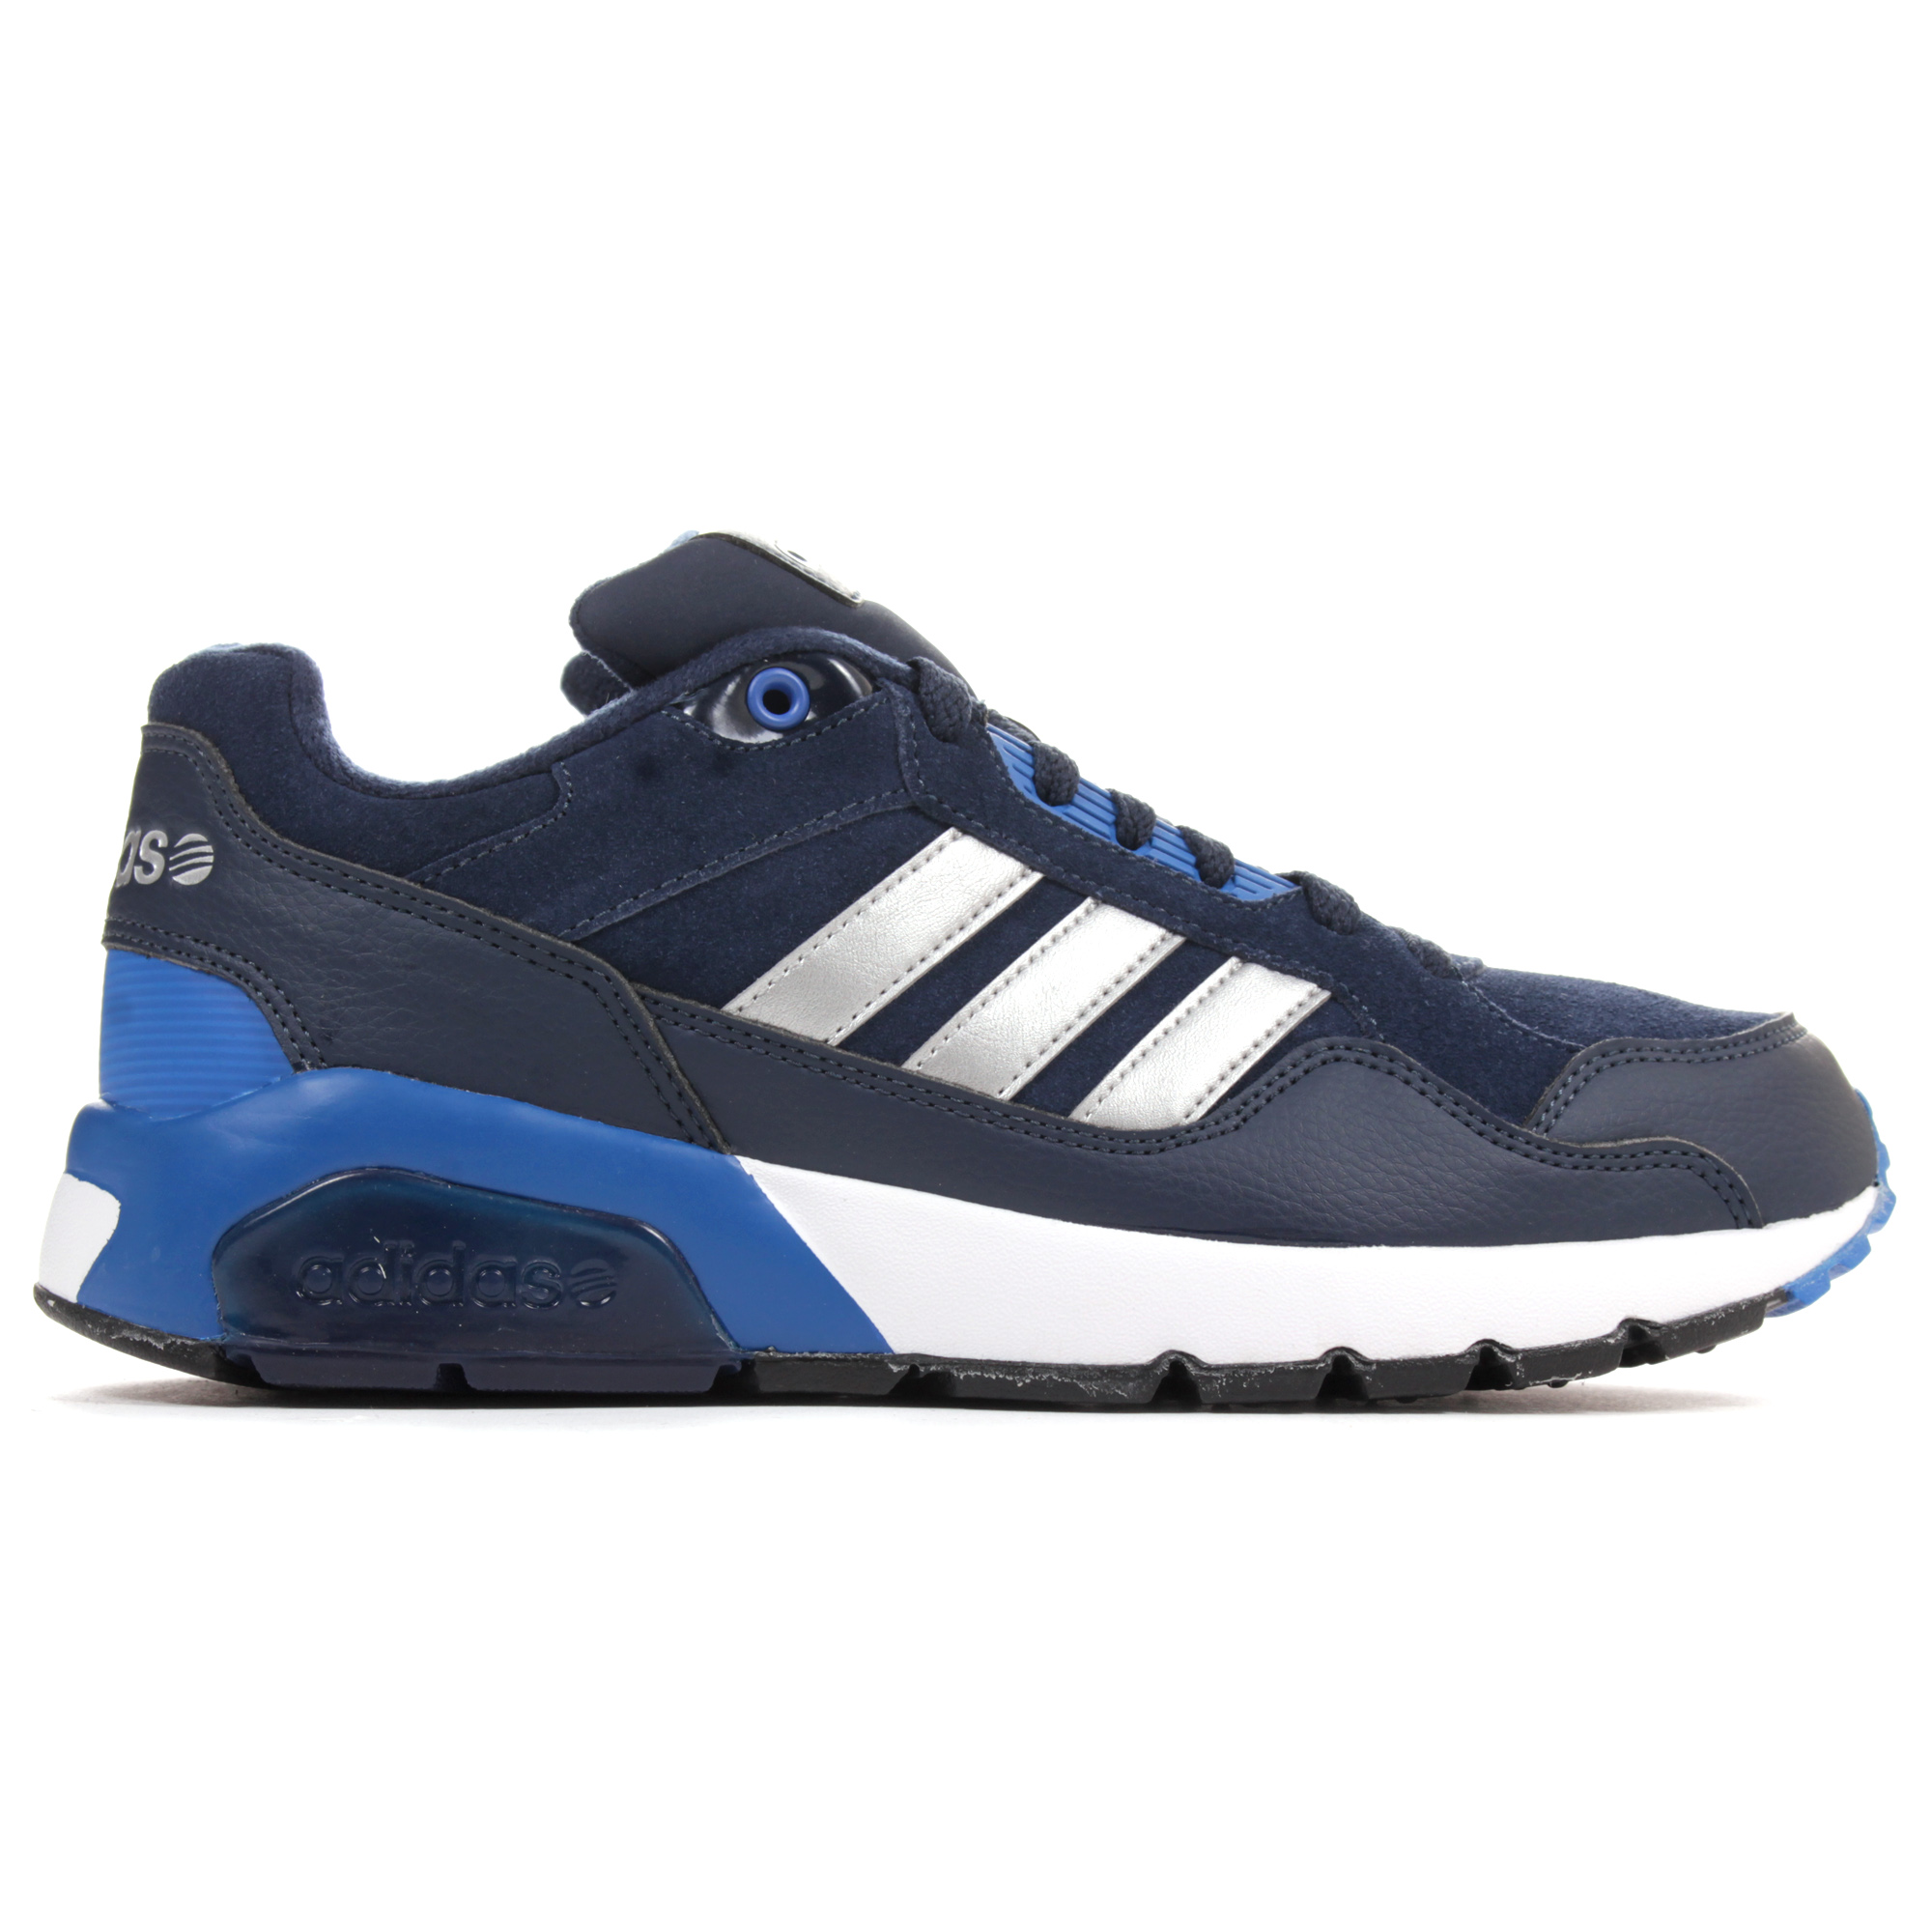 Adidas Neo Label Run9tis